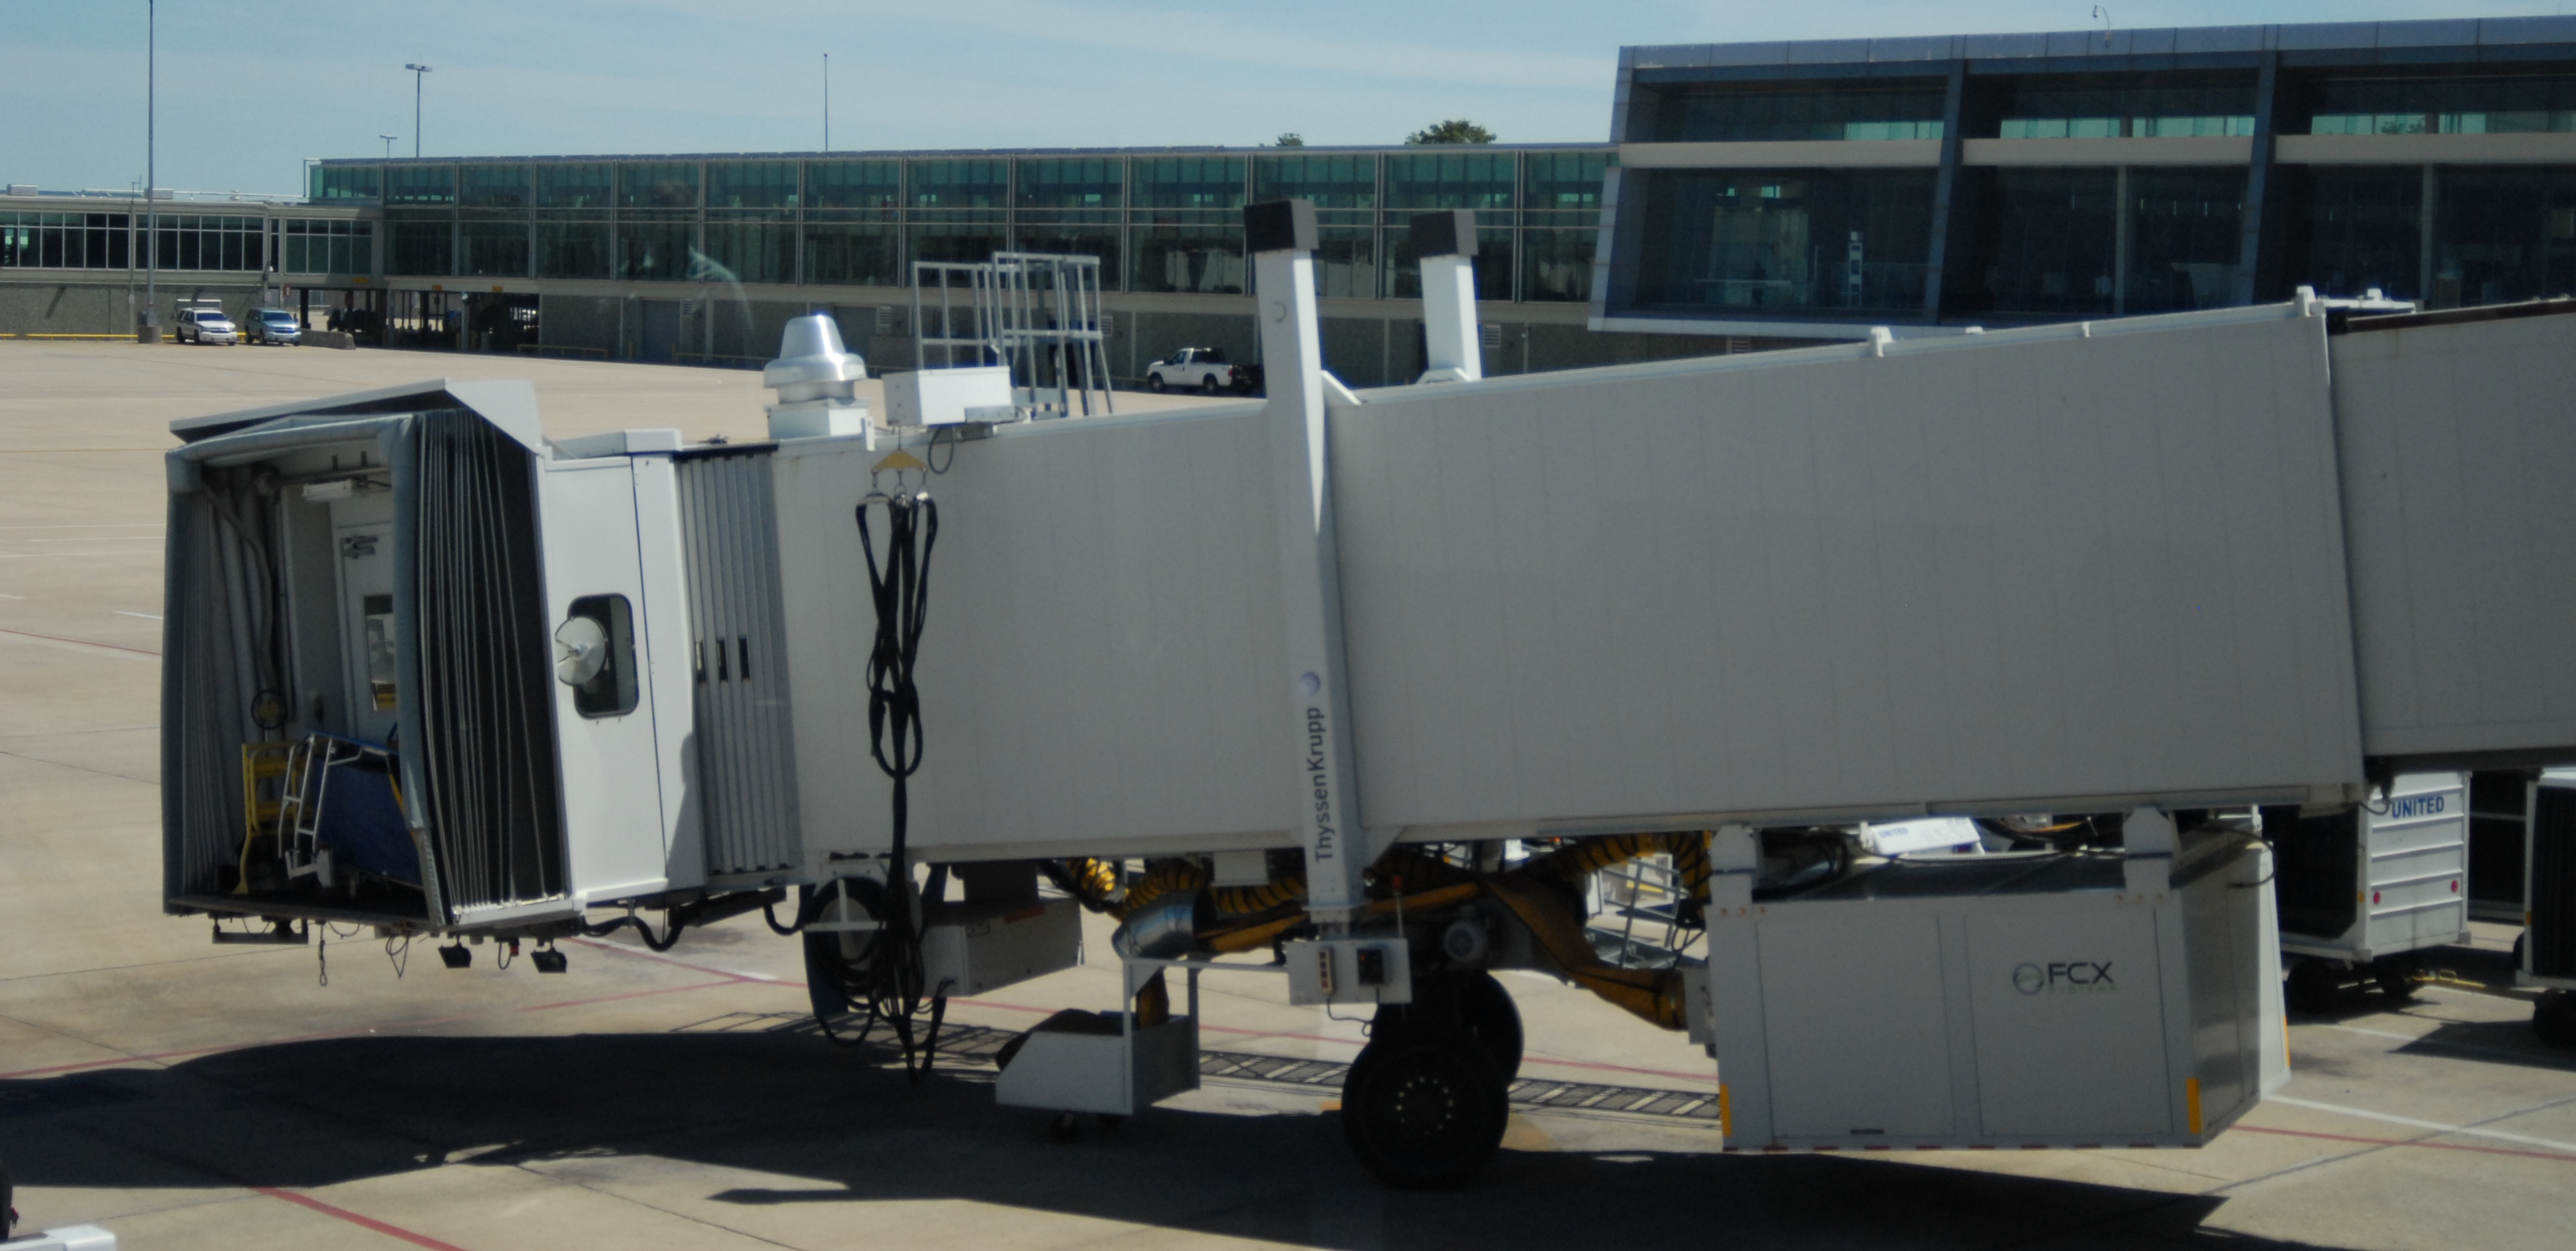 Jet Bridges & Passenger Walkways